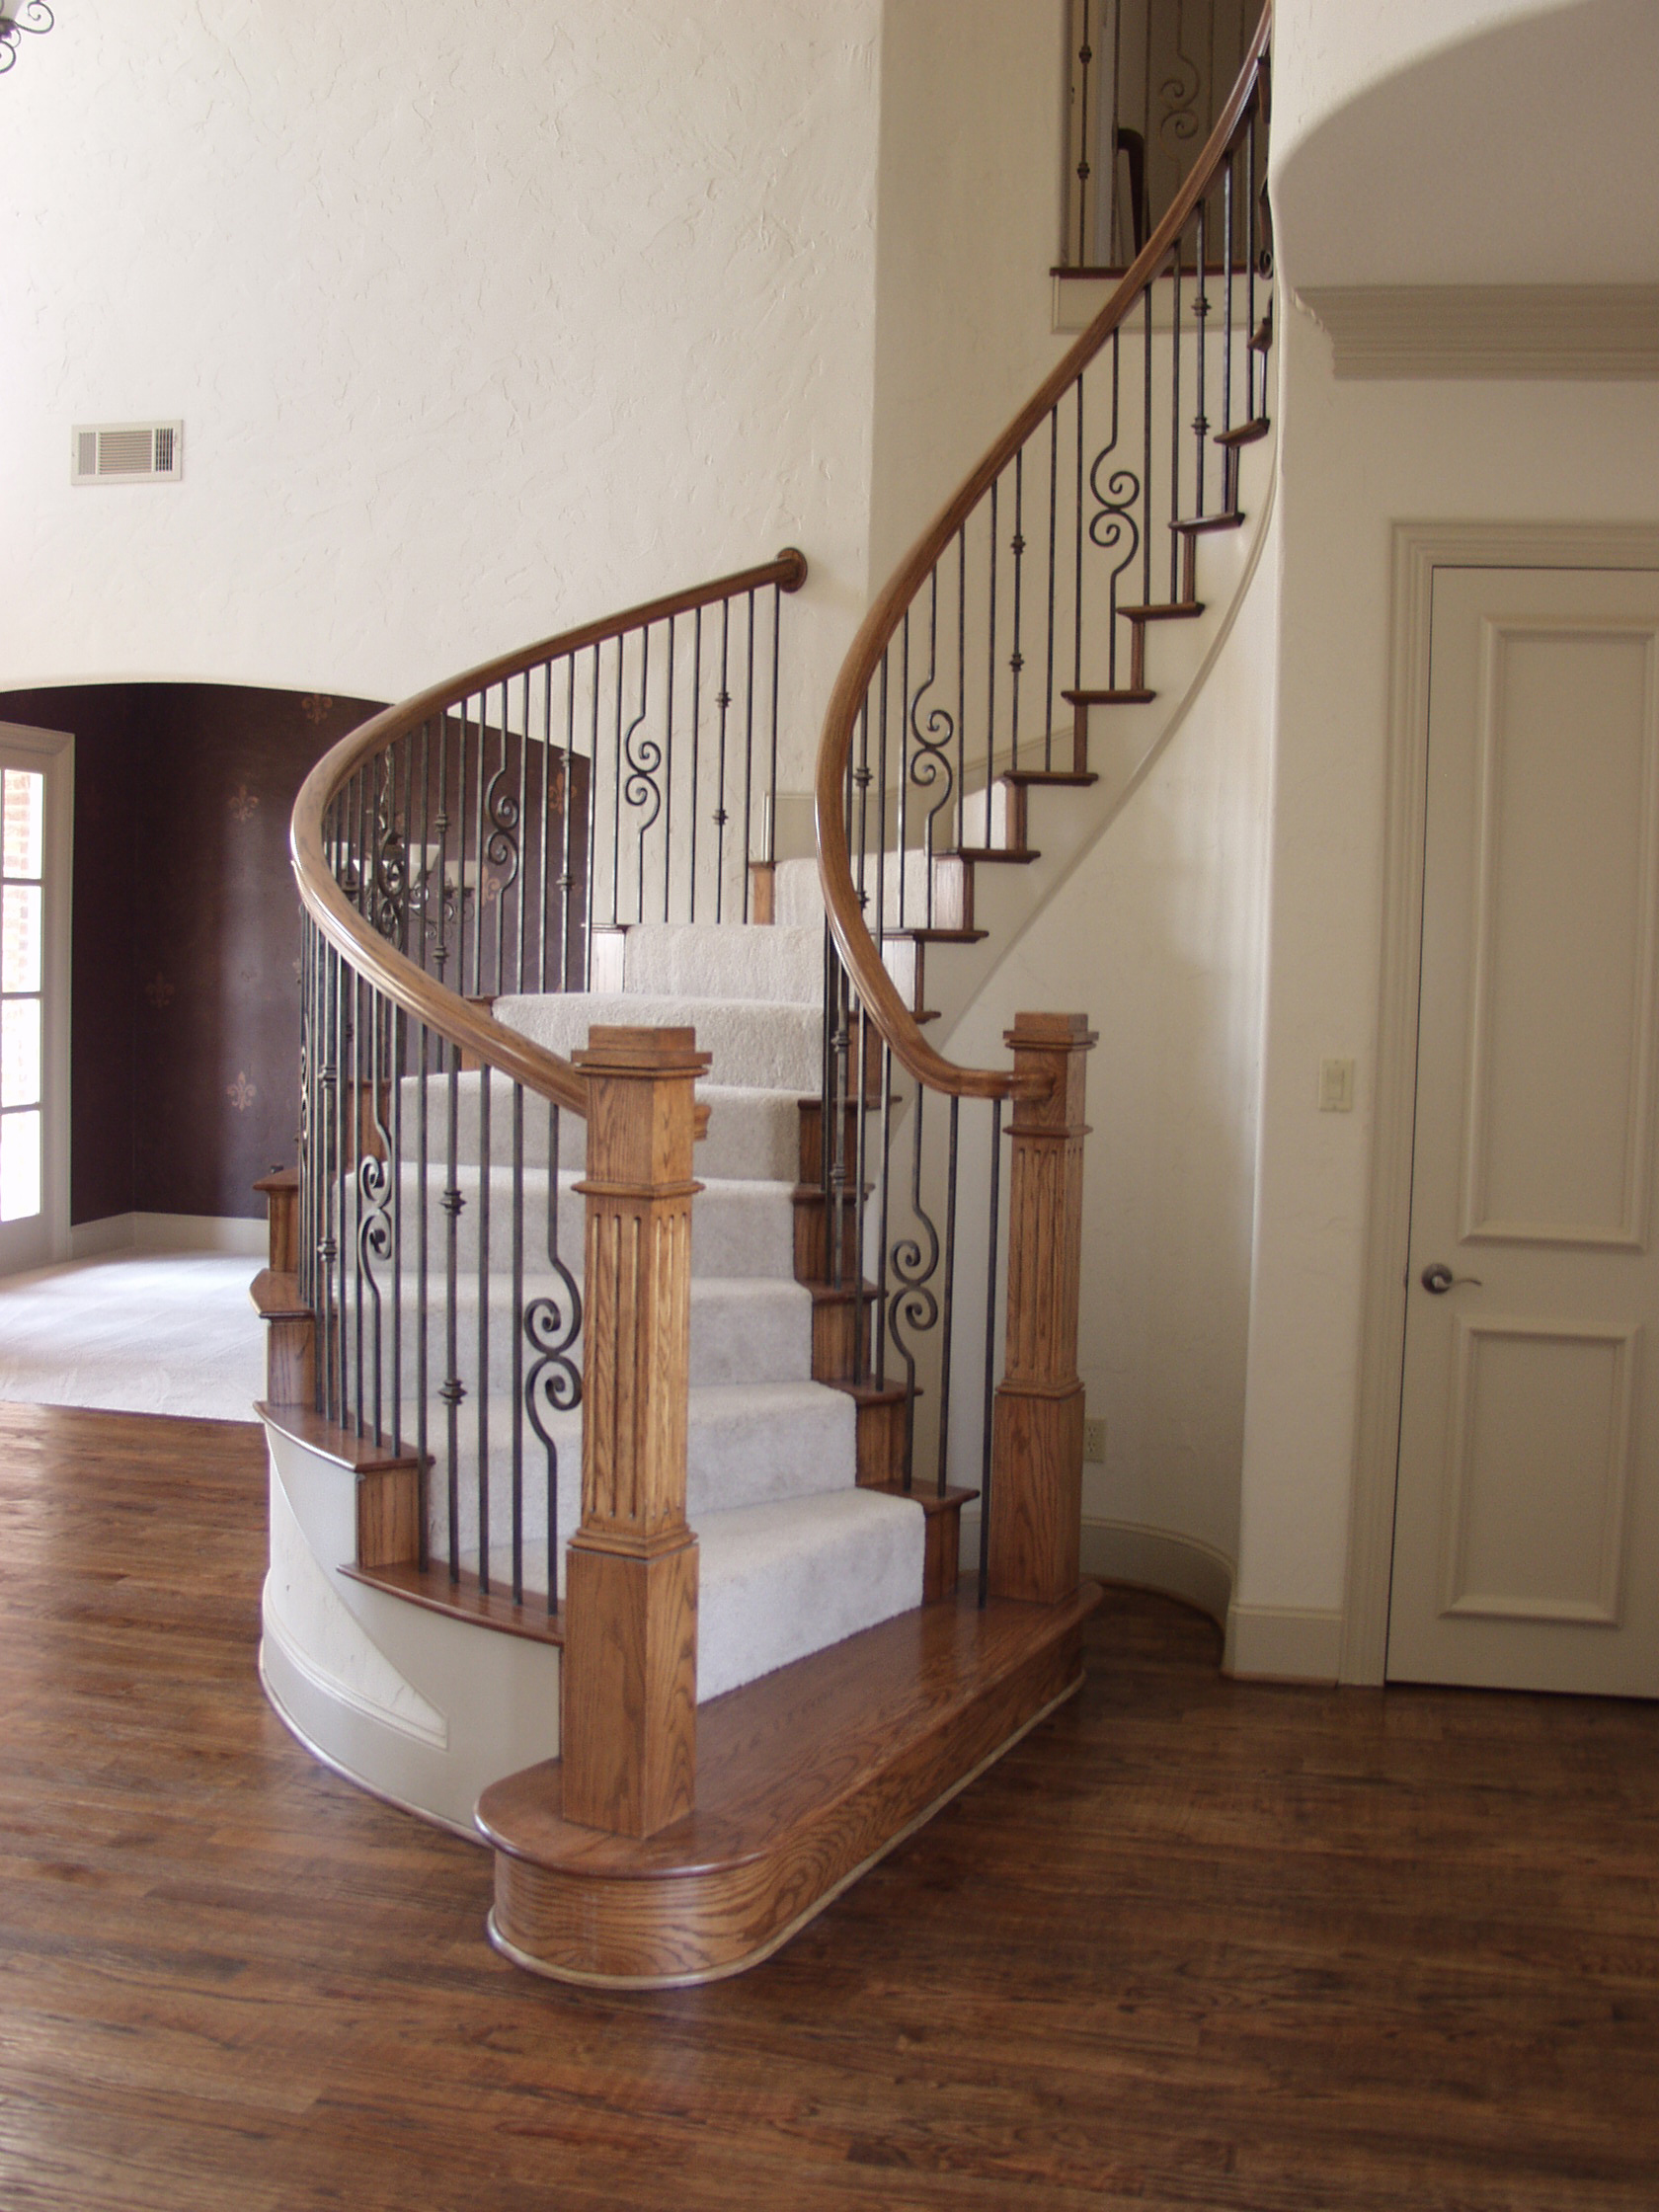 Versatile In a Circular Staircase with Scrolls